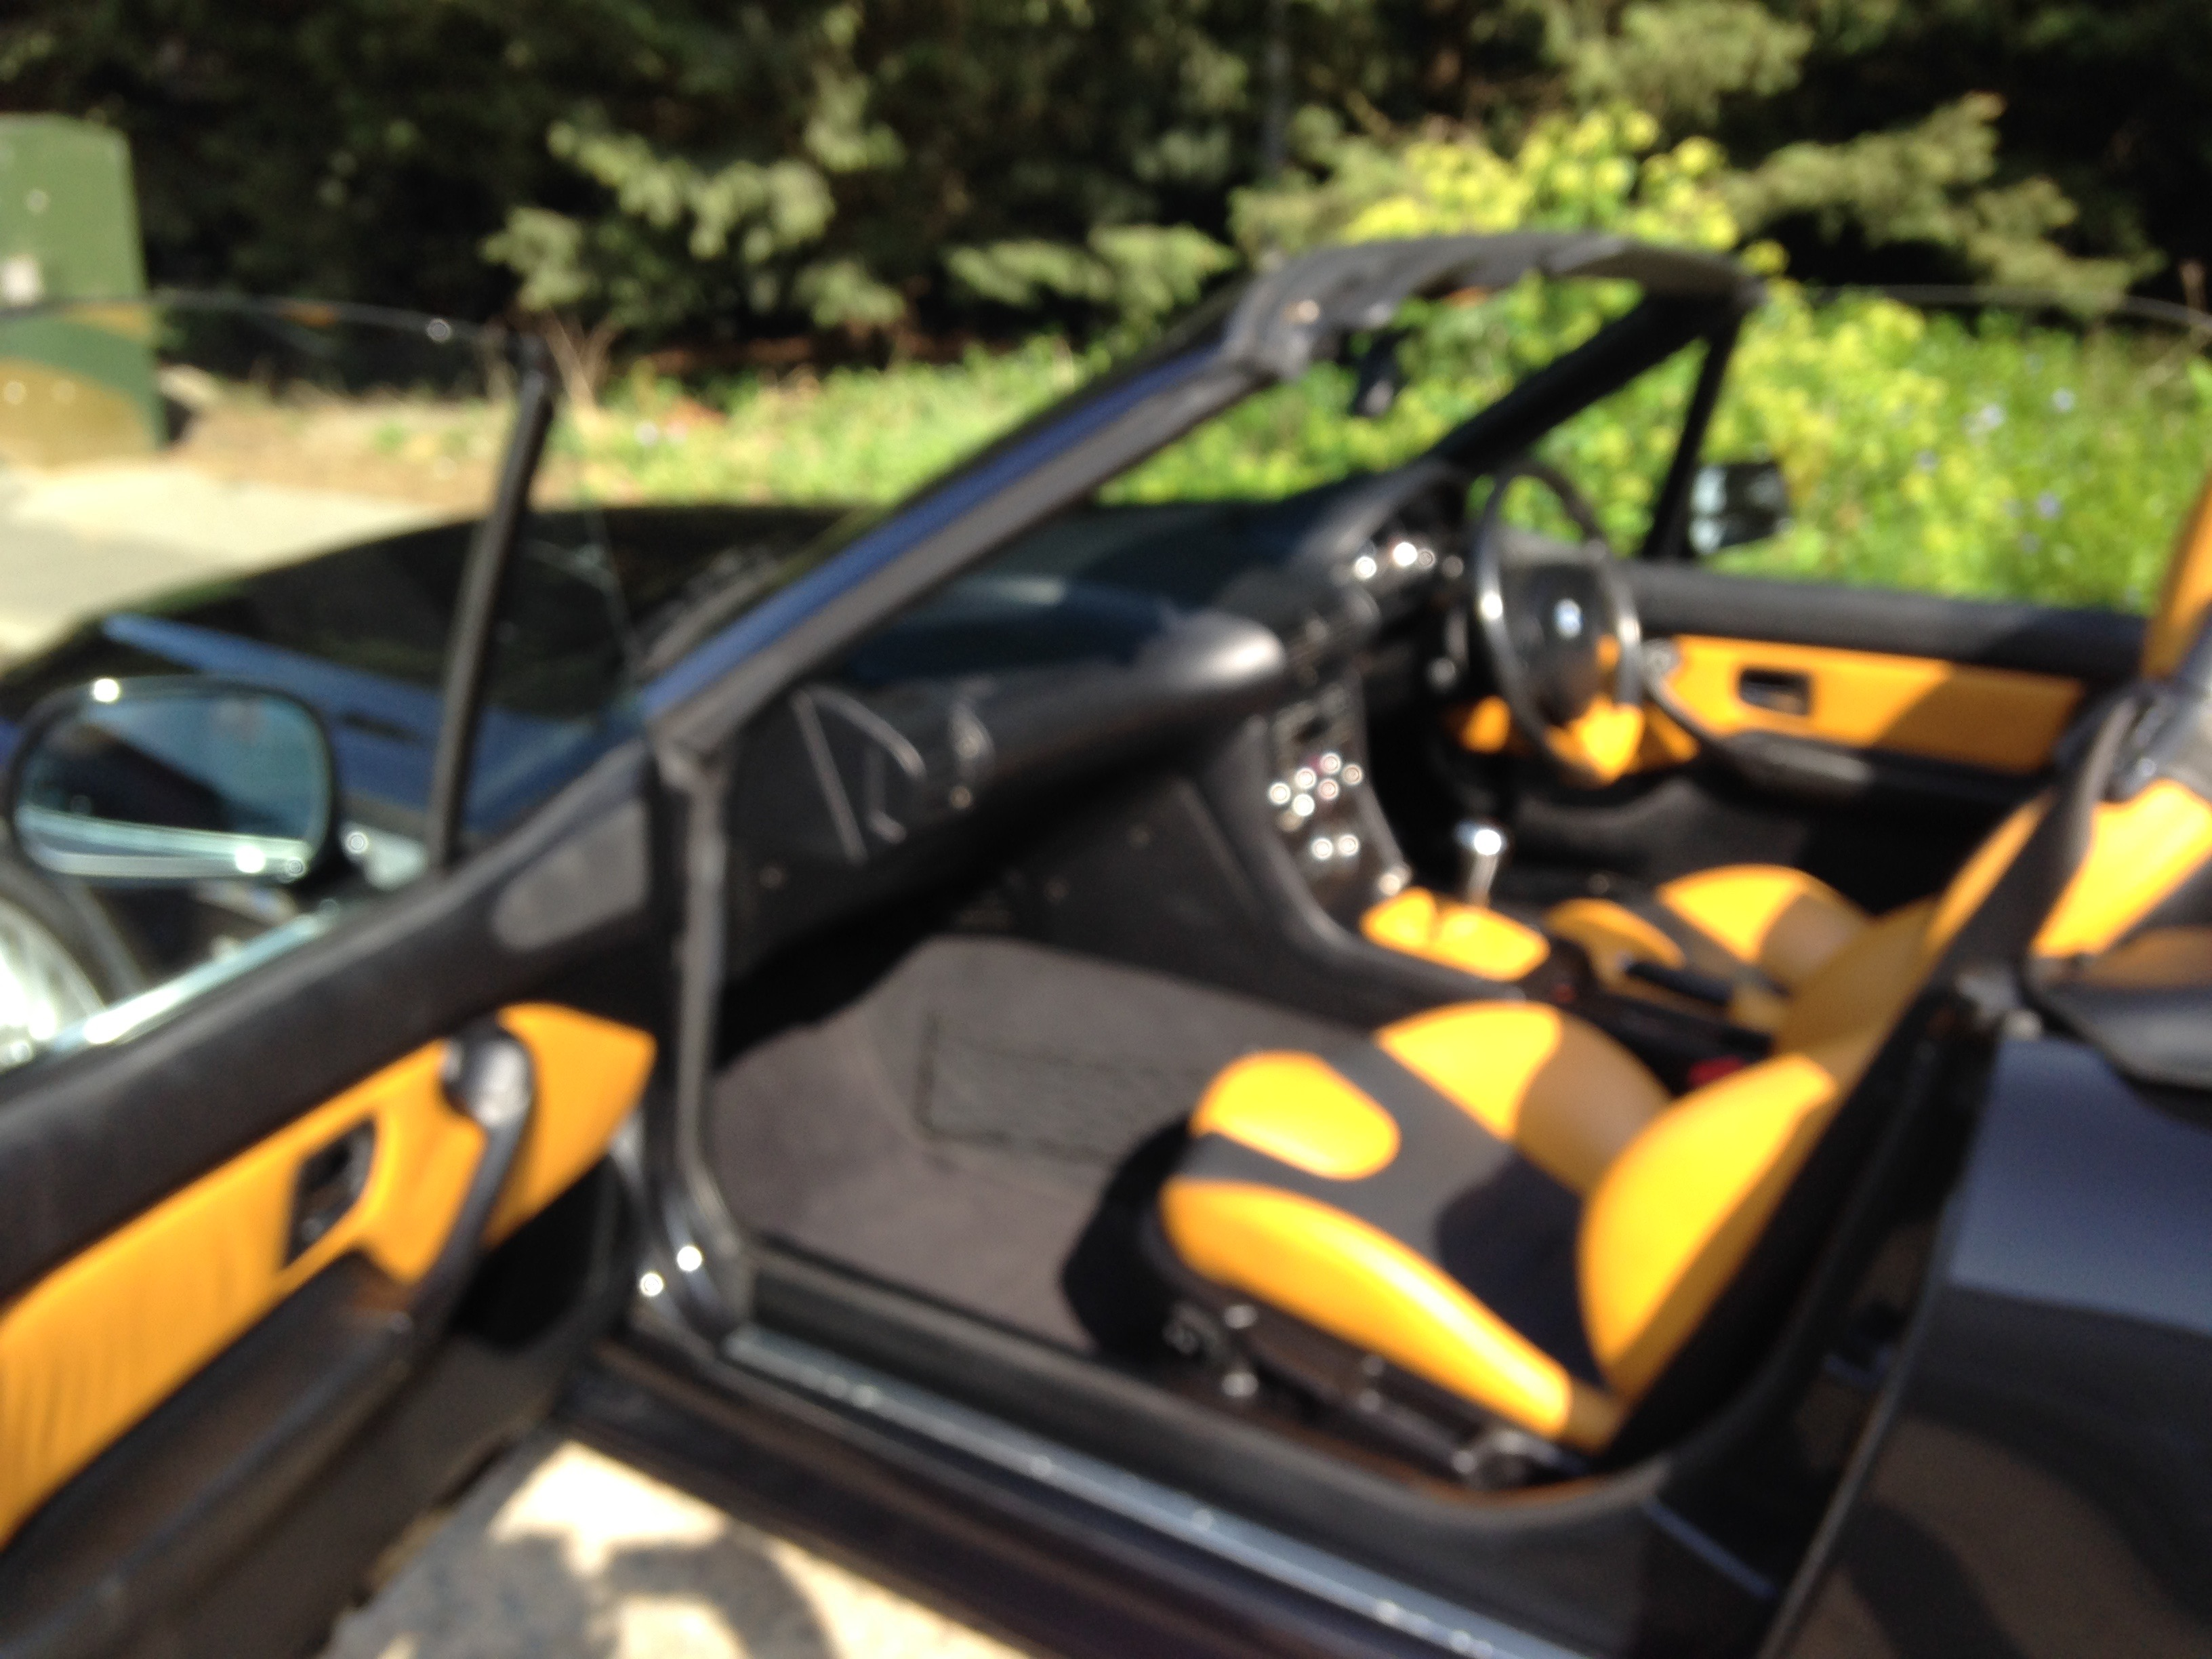 2000 Bmw Z3 Cosmos Black Edition 2 0 This Stunning 6 Cylinder 2 0 Z3 Is The Quot Black Edition Quot Mod